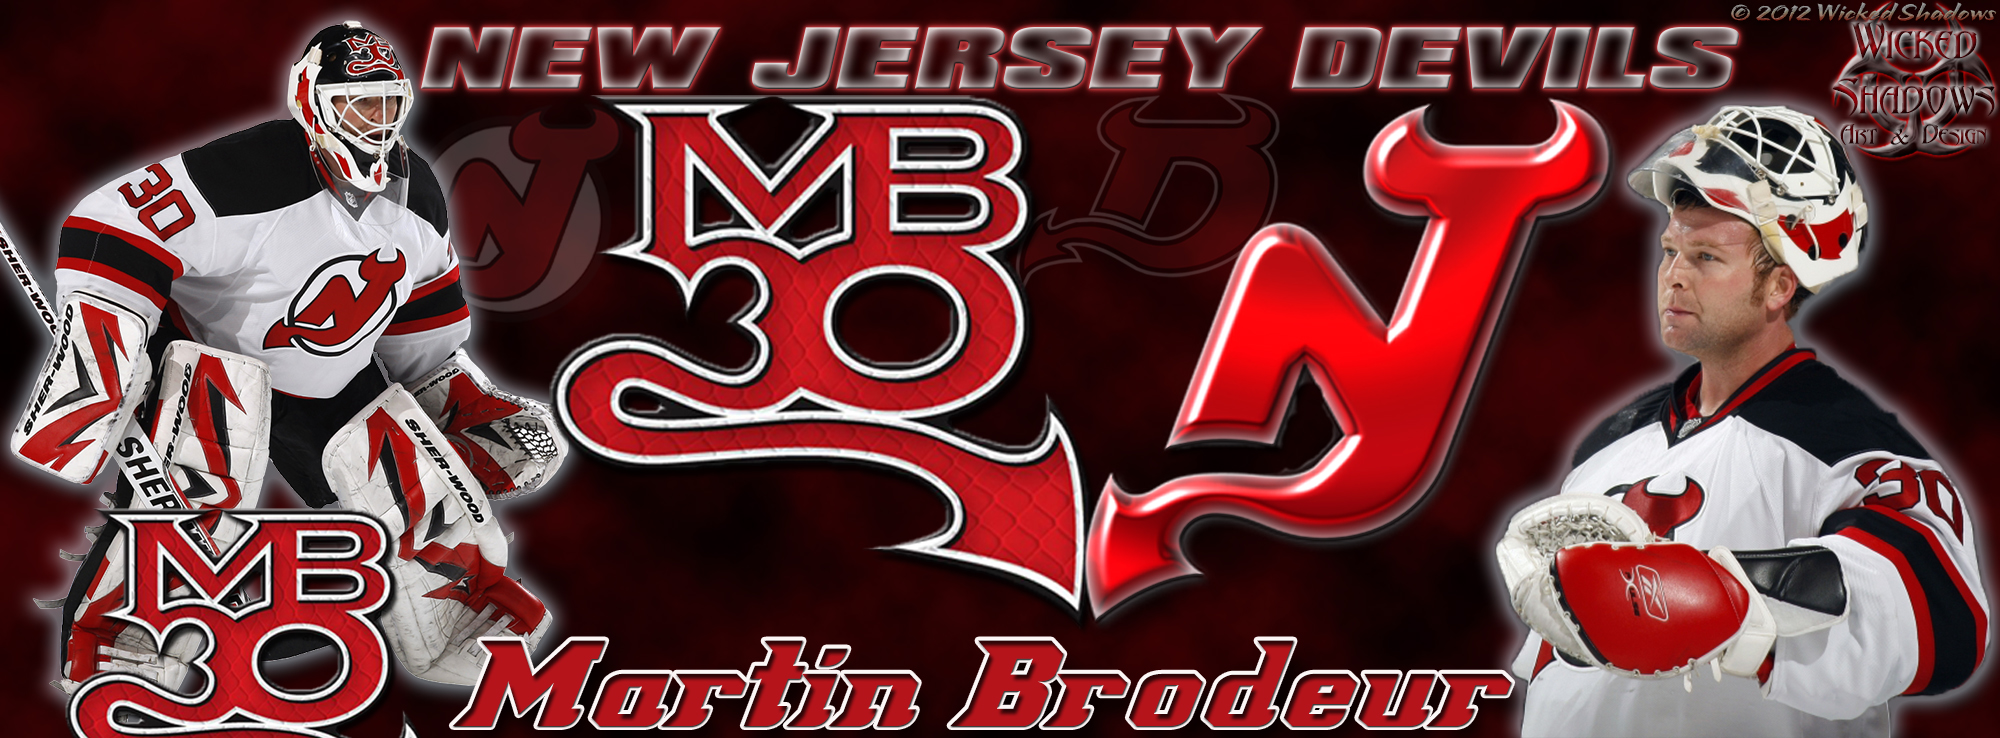 Martin Brodeur Facebook Cover Photo Signature